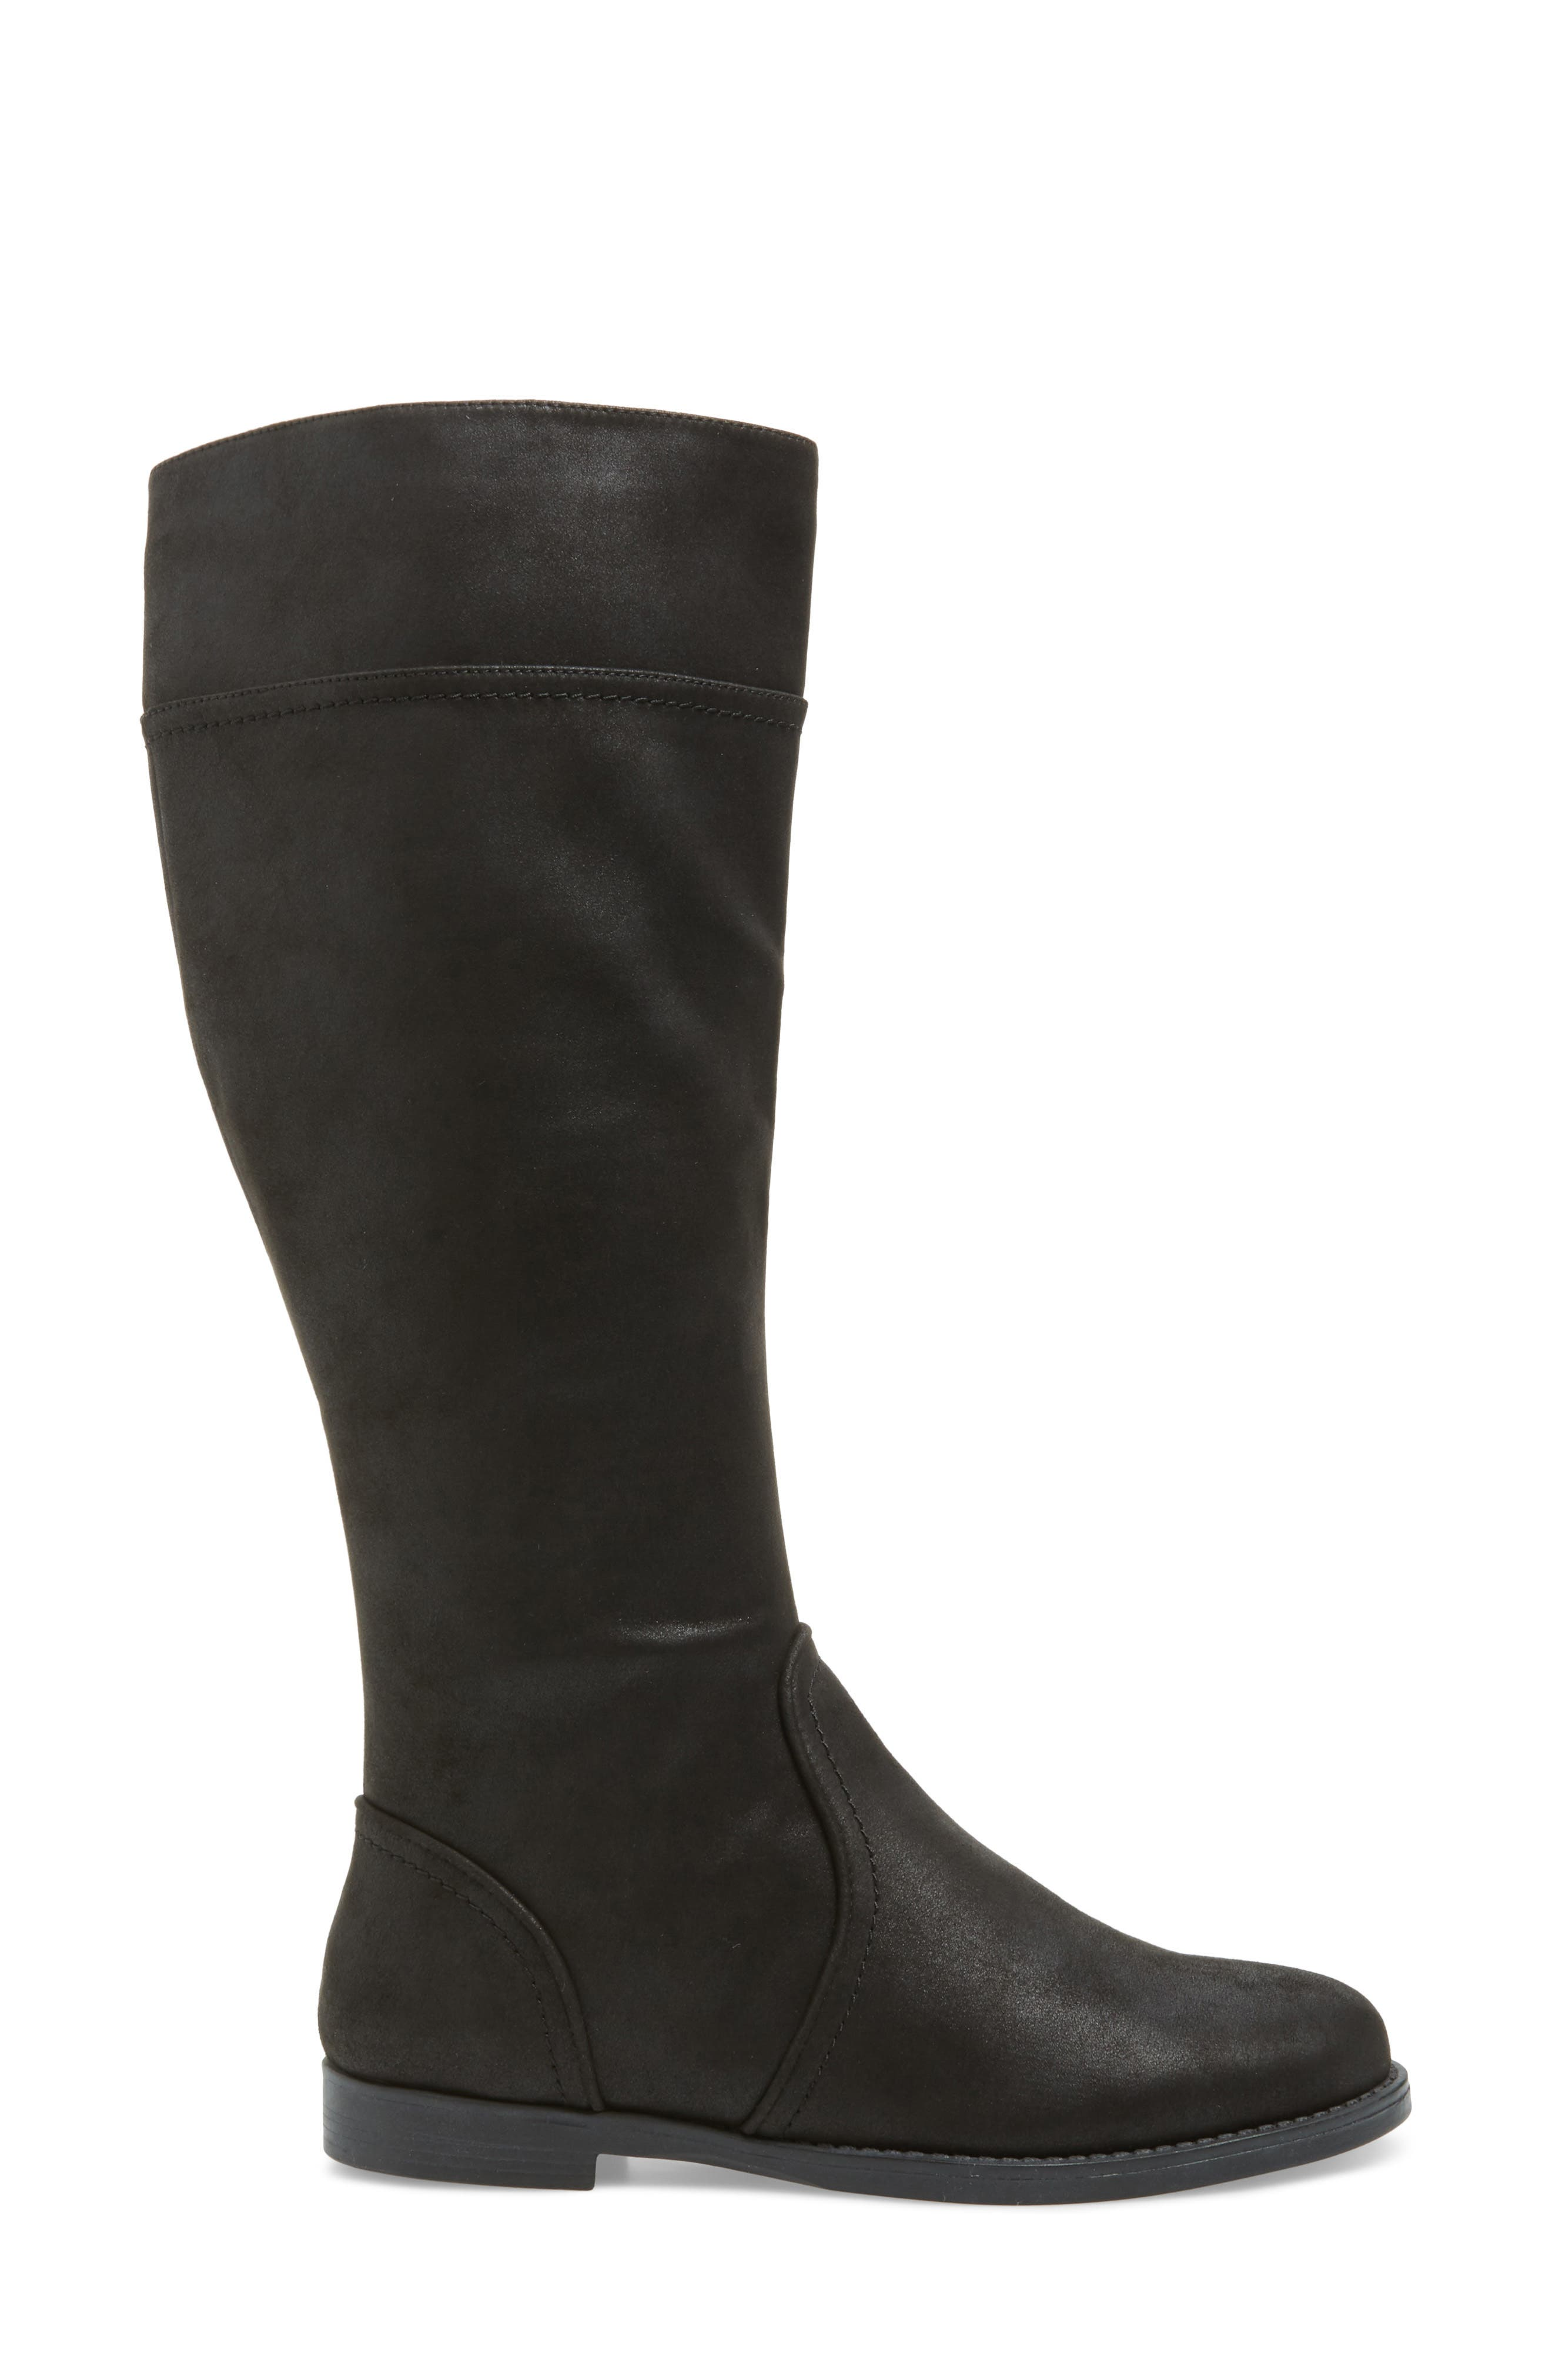 BELLA VITA, Rebecca II Knee High Boot, Alternate thumbnail 3, color, 001